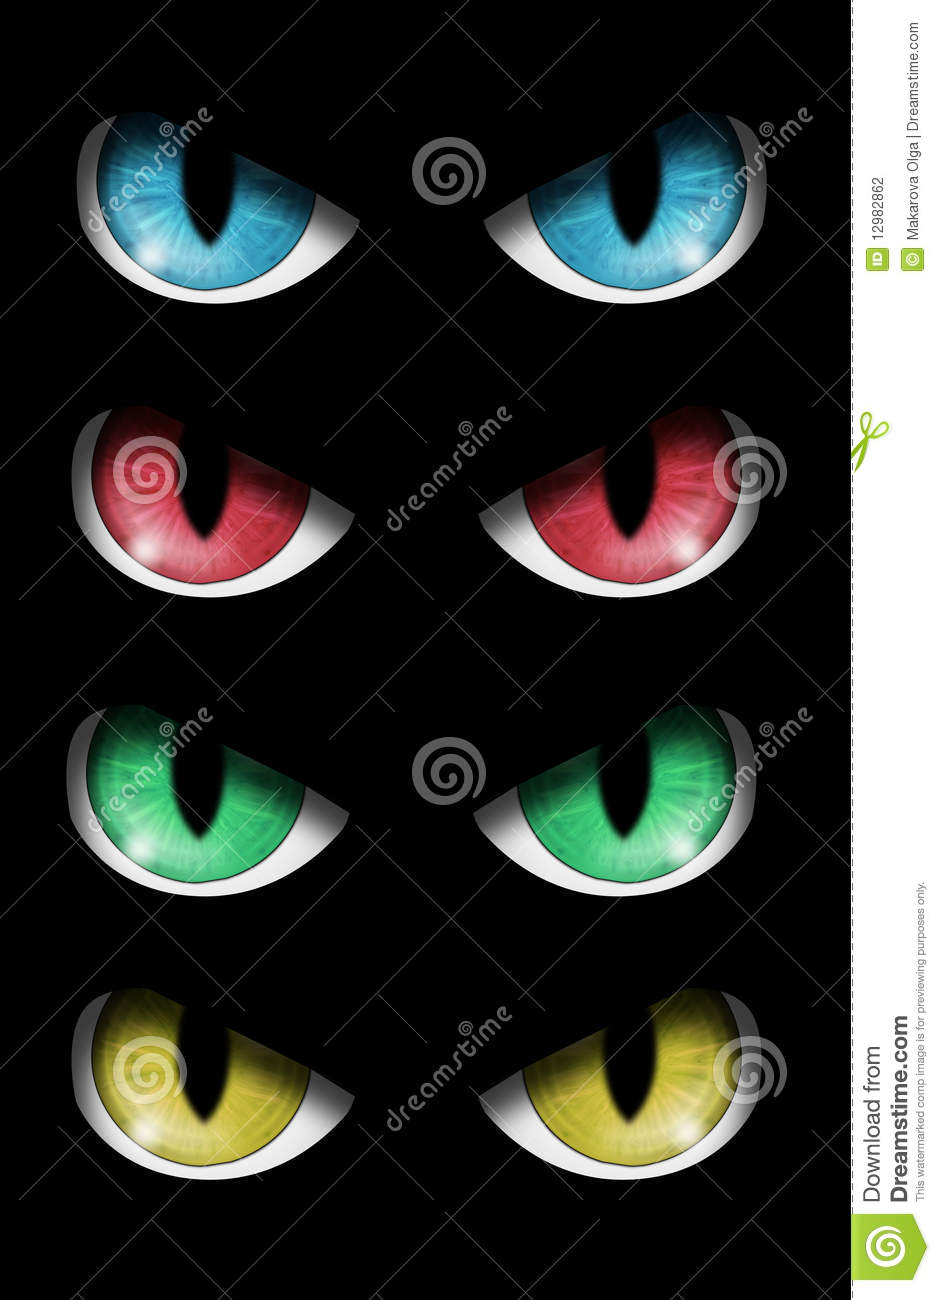 Stock Image Dreamstime Set Of Evil Eyes Stock Photography Image 12982862